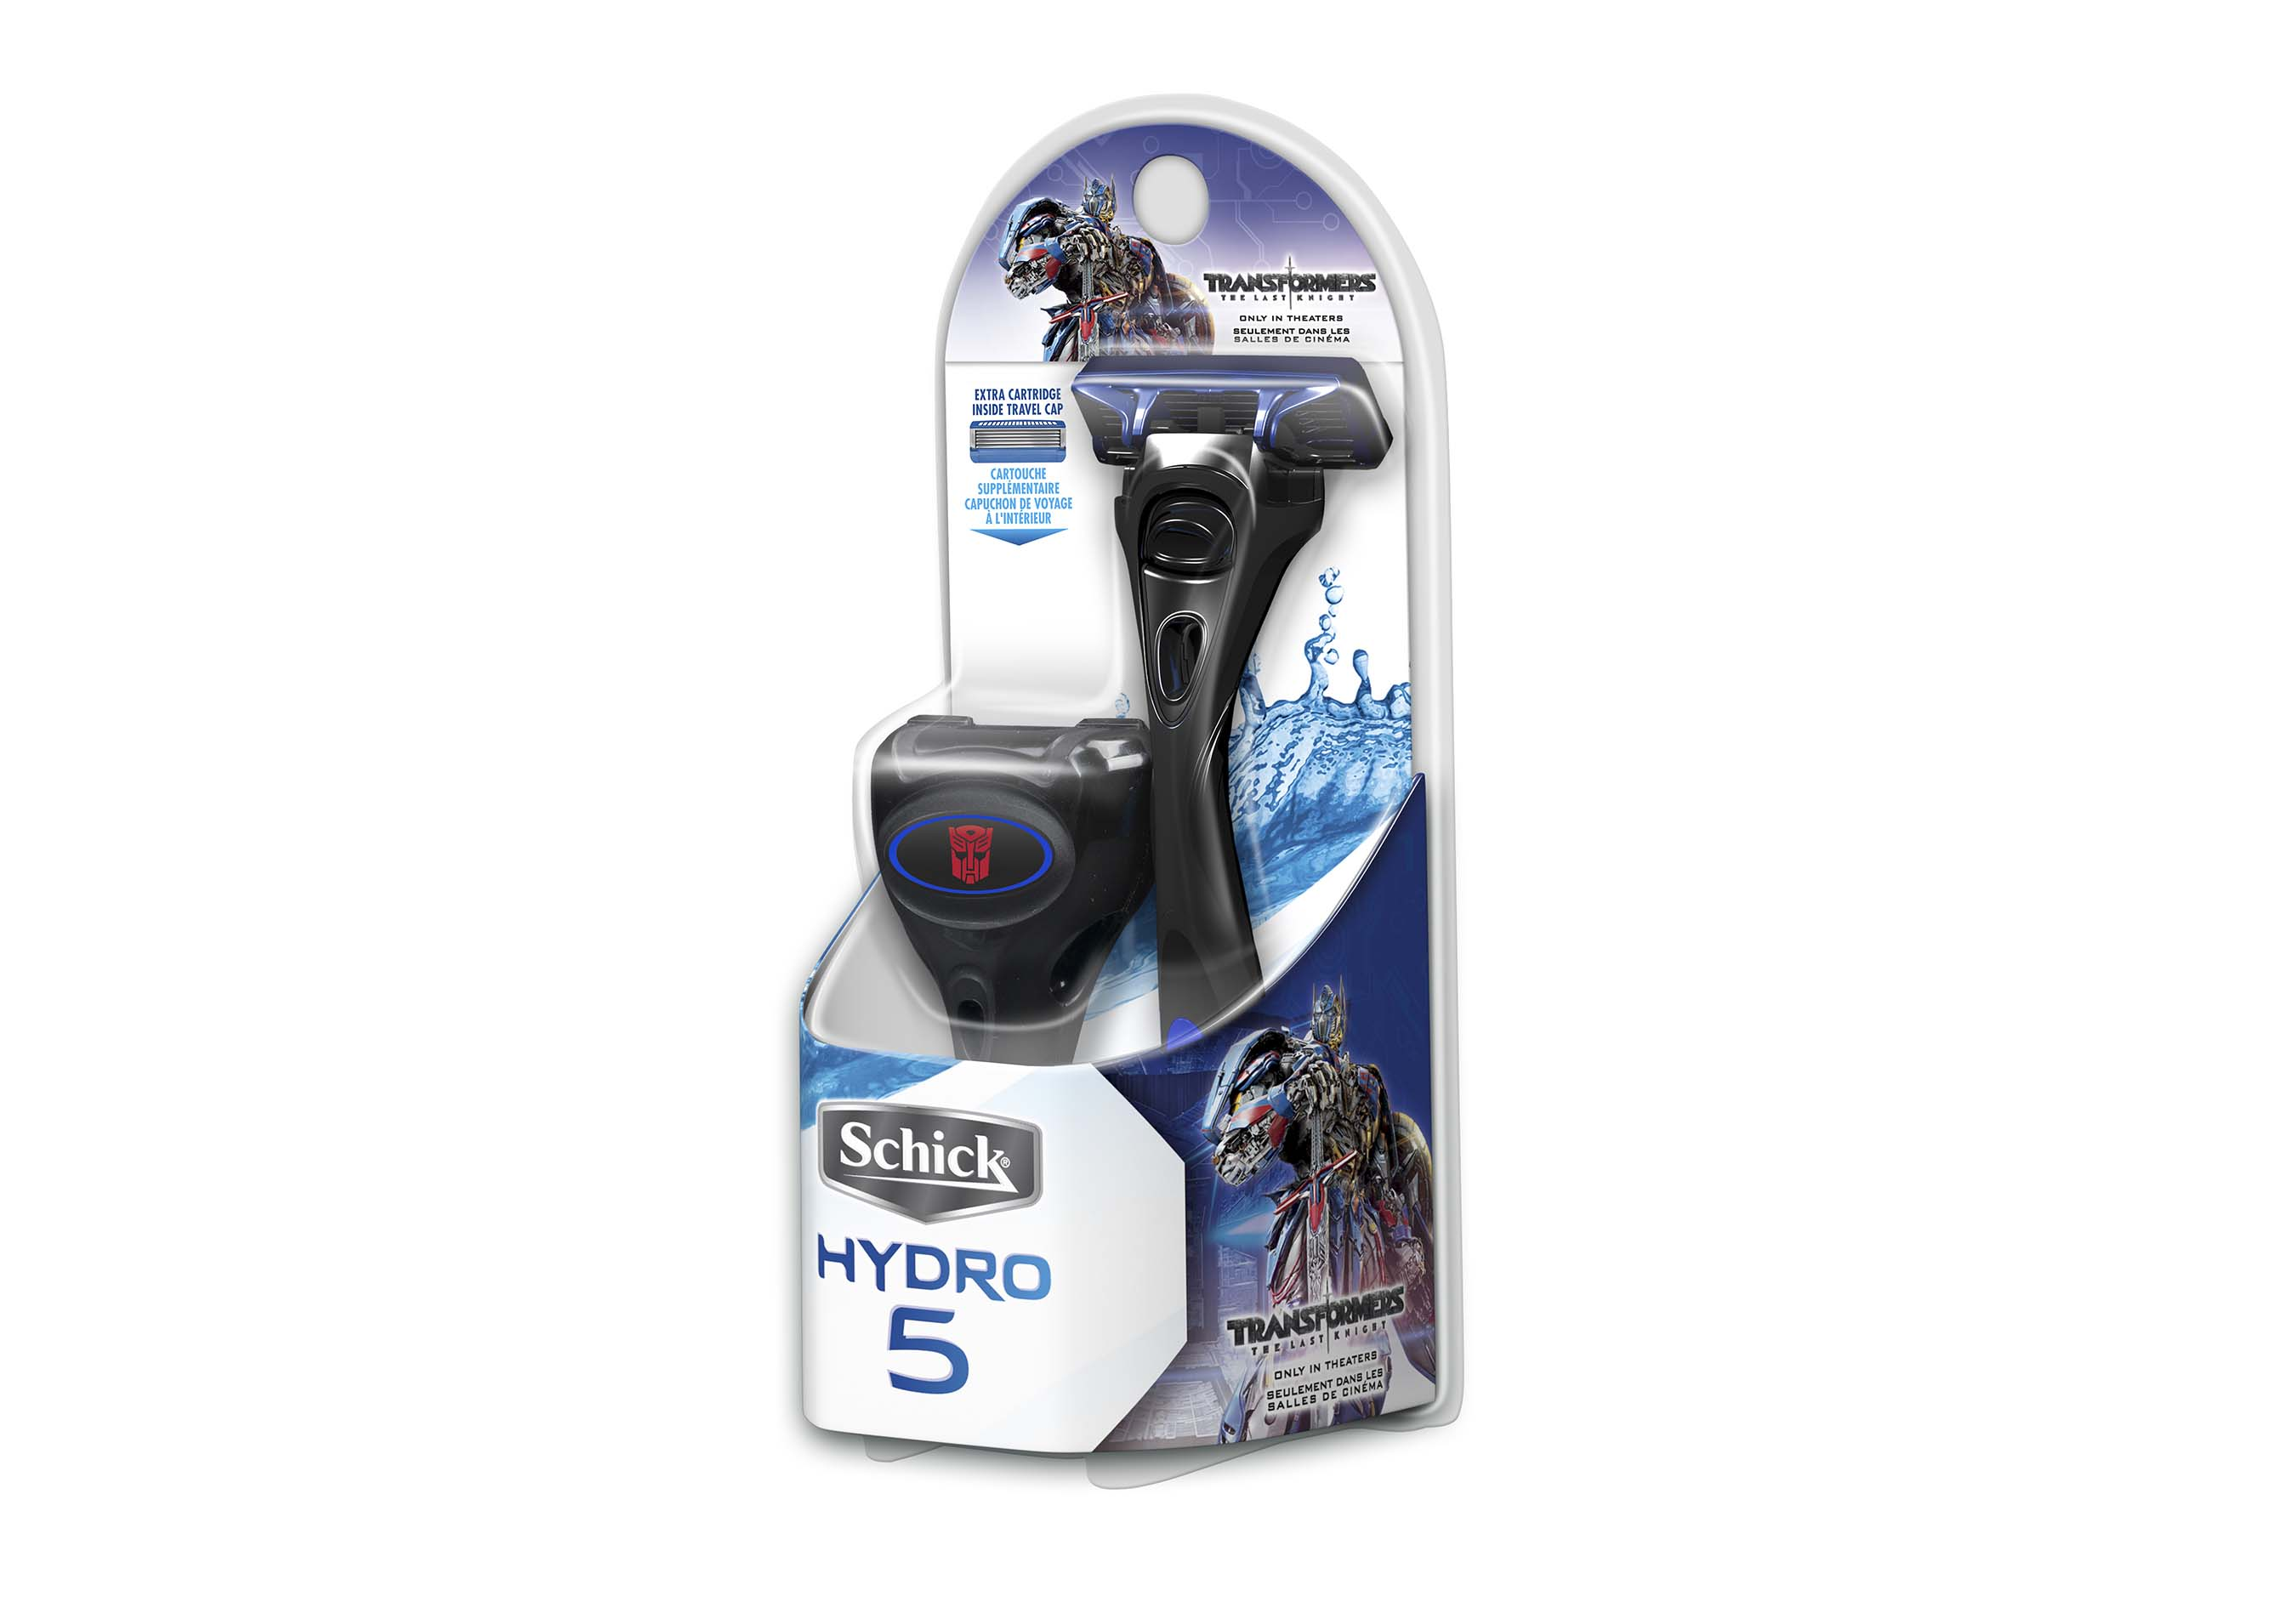 Shoppers can experience a great shave using the new, limited-edition, collectible Schick® Hydro® handles featuring Transformers: The Last Knight fan-favorites Autobot and Decepticon characters including: Optimus Prime, Bumblebee and Megatron, available at your local mass, drug and grocery retailers.